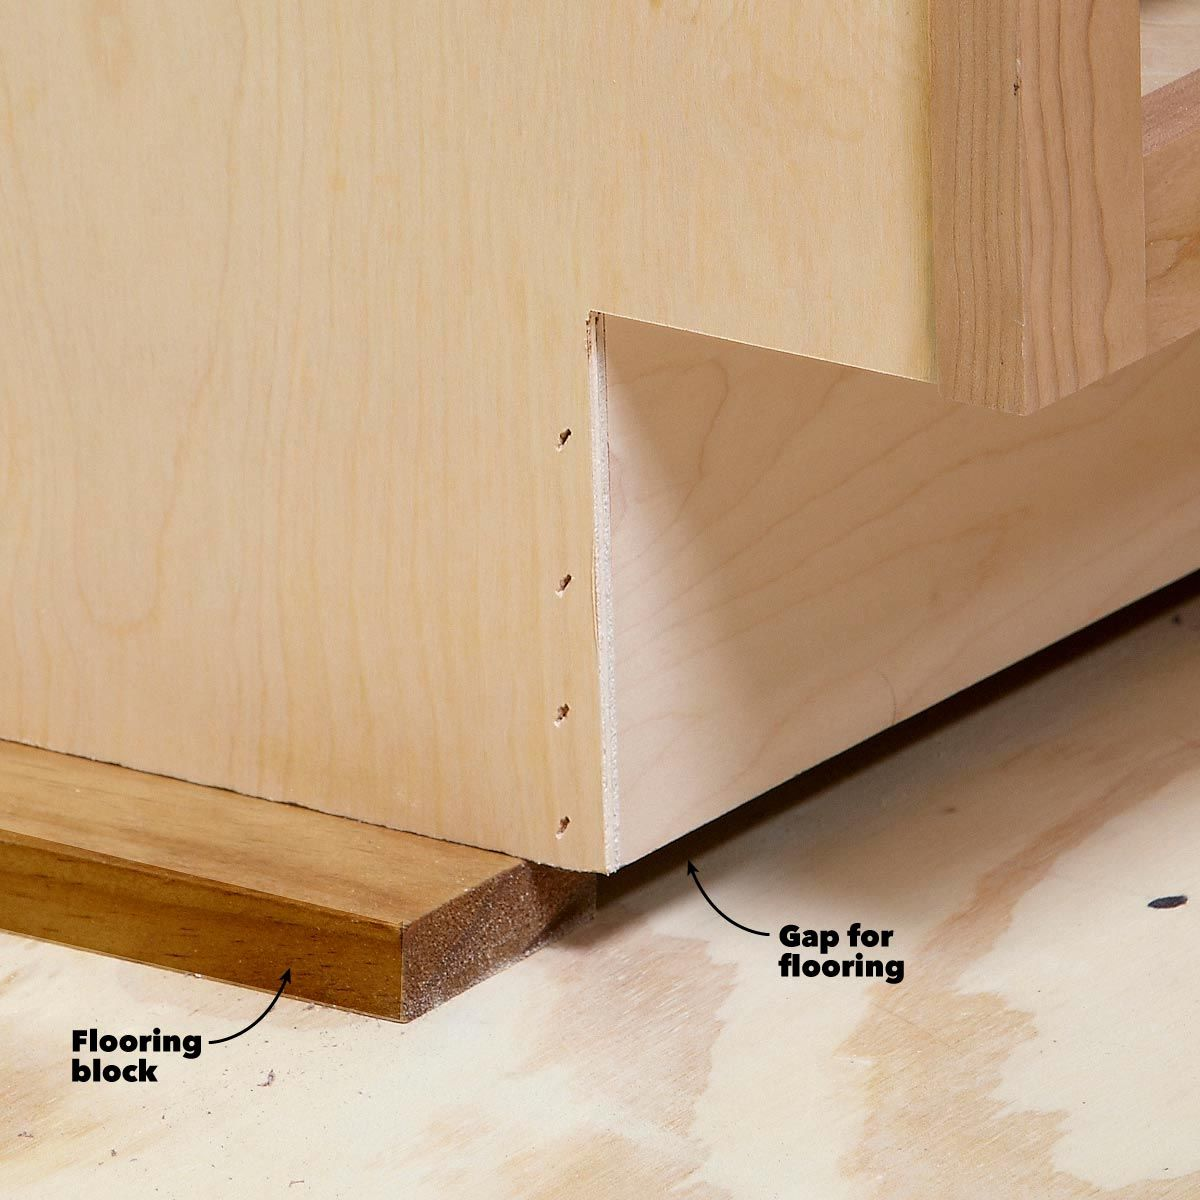 How To Install Cabinets Like A Pro The Family Handyman Diy Kitchen Renovation Installing Cabinets Installing Kitchen Cabinets